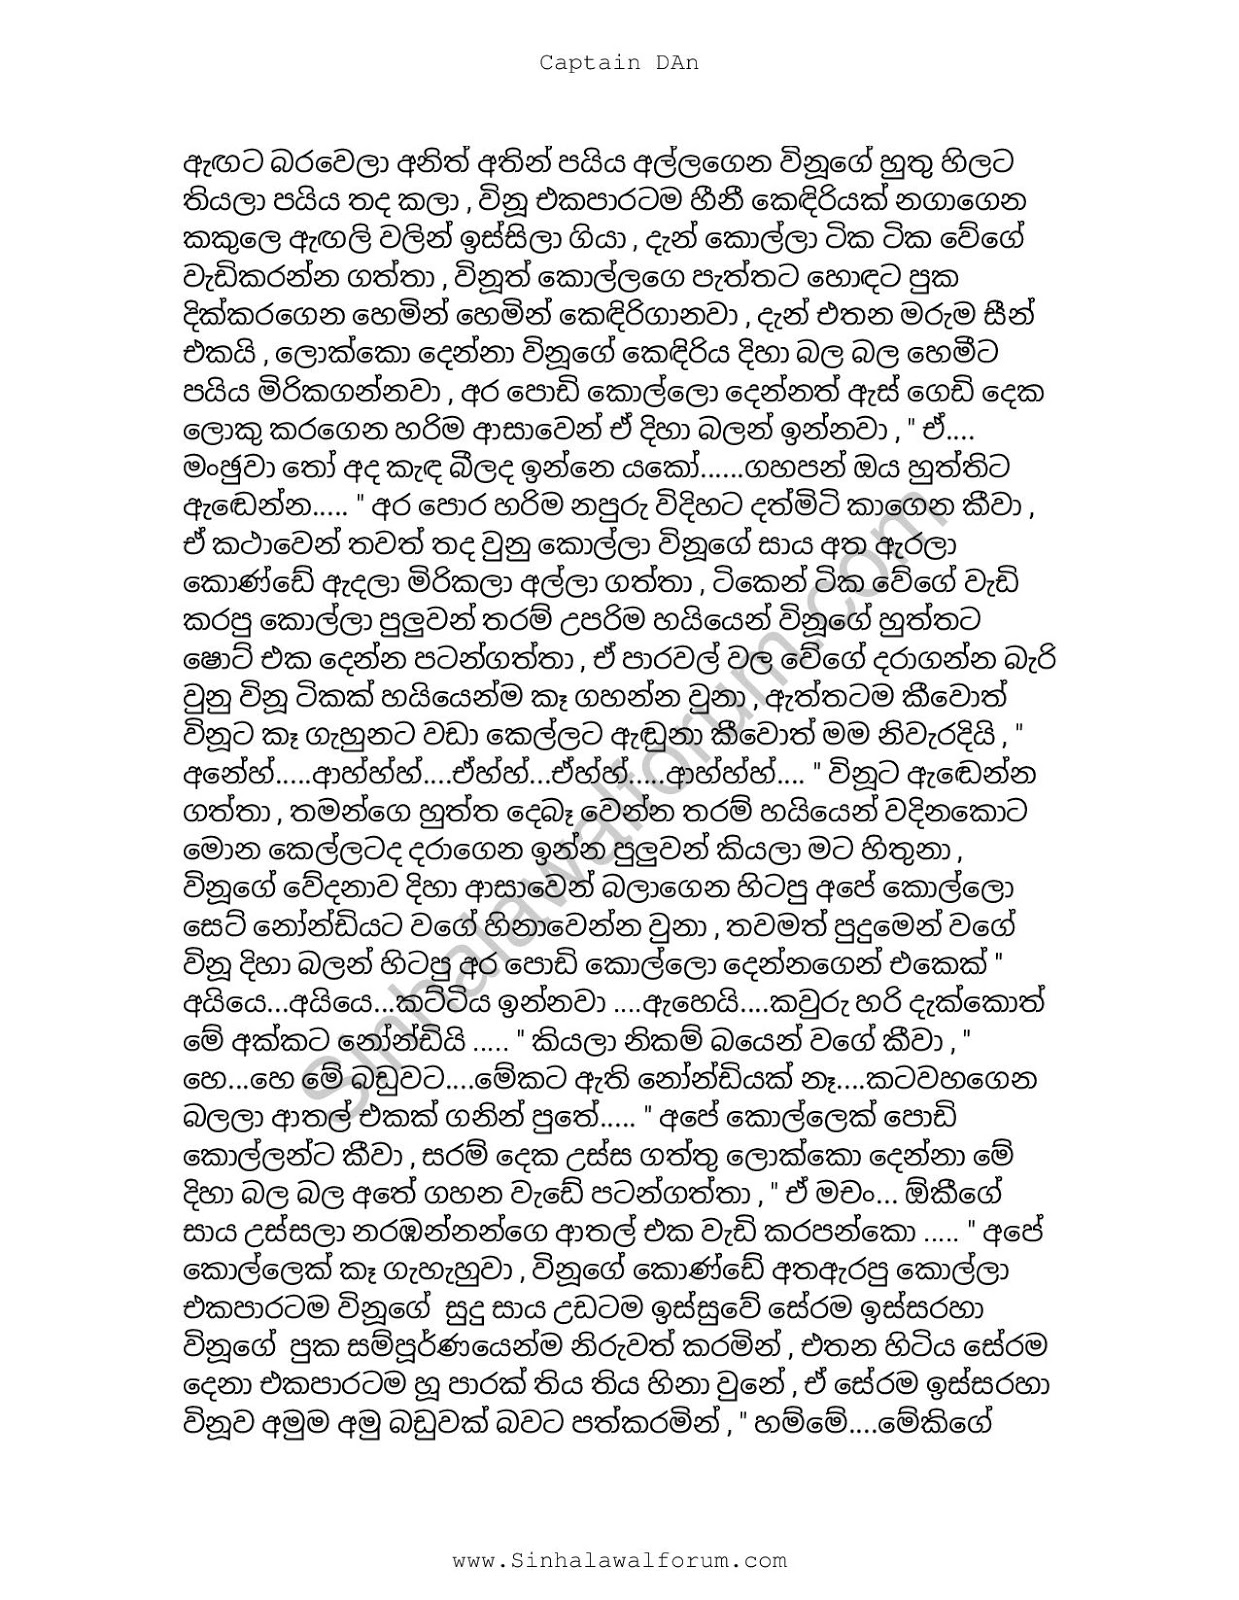 With you Velamma wal sinhala pdf opinion you